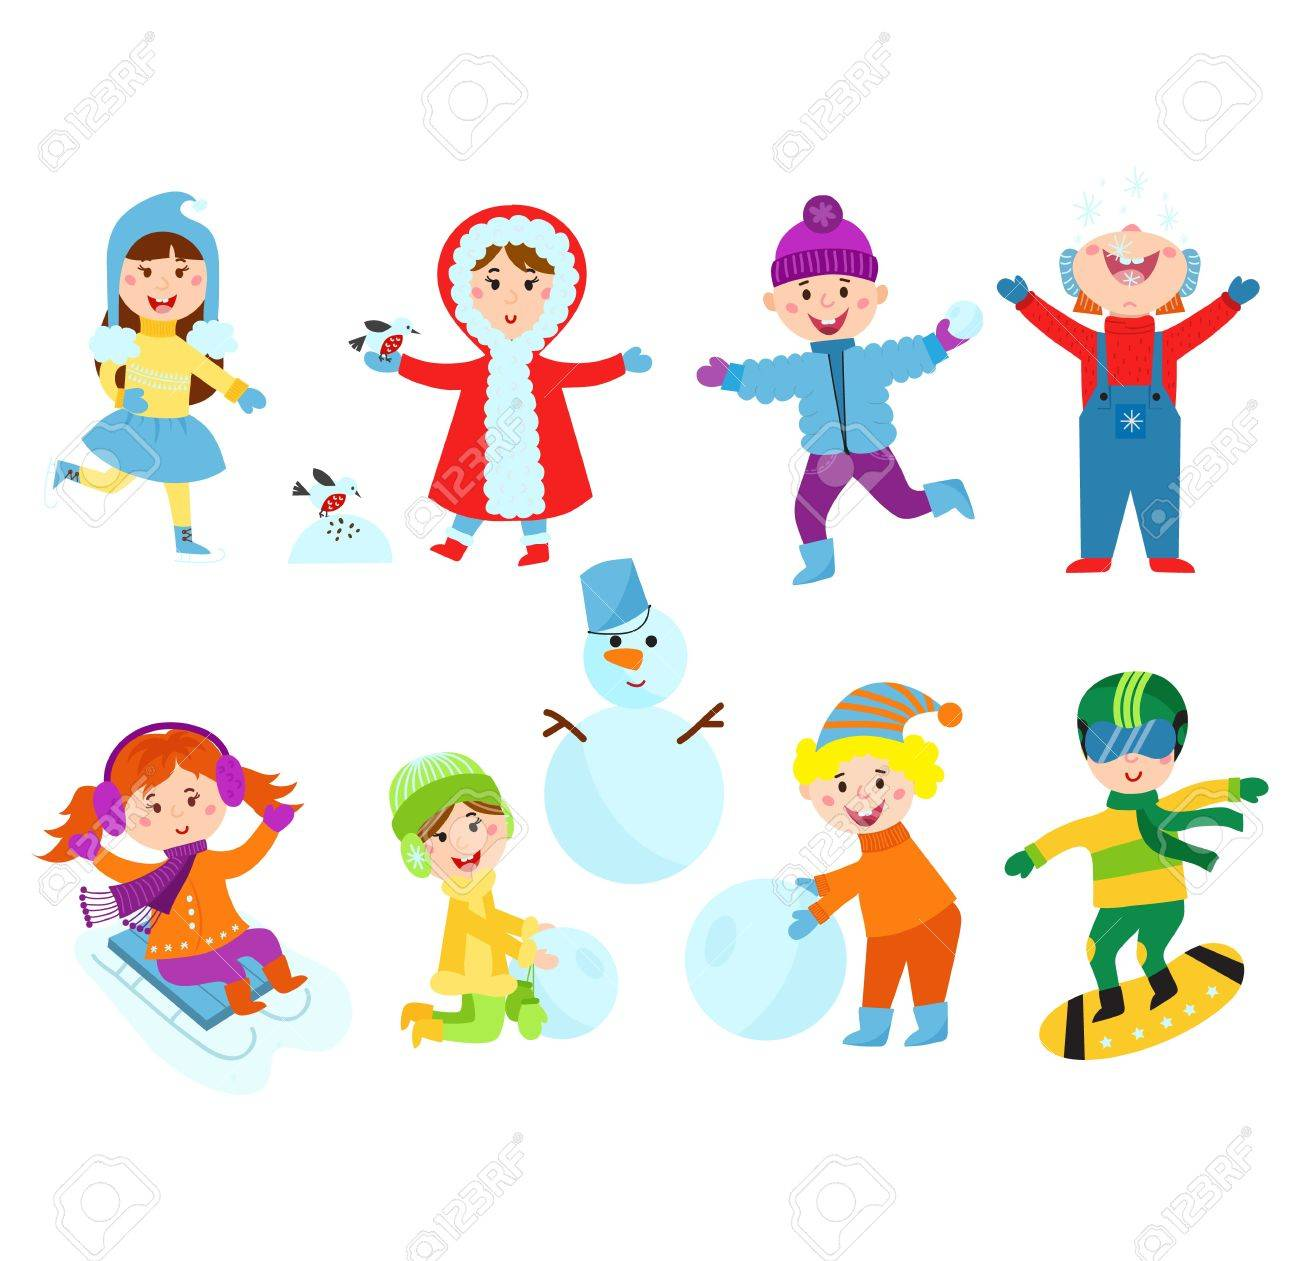 Winter Games Clipart.